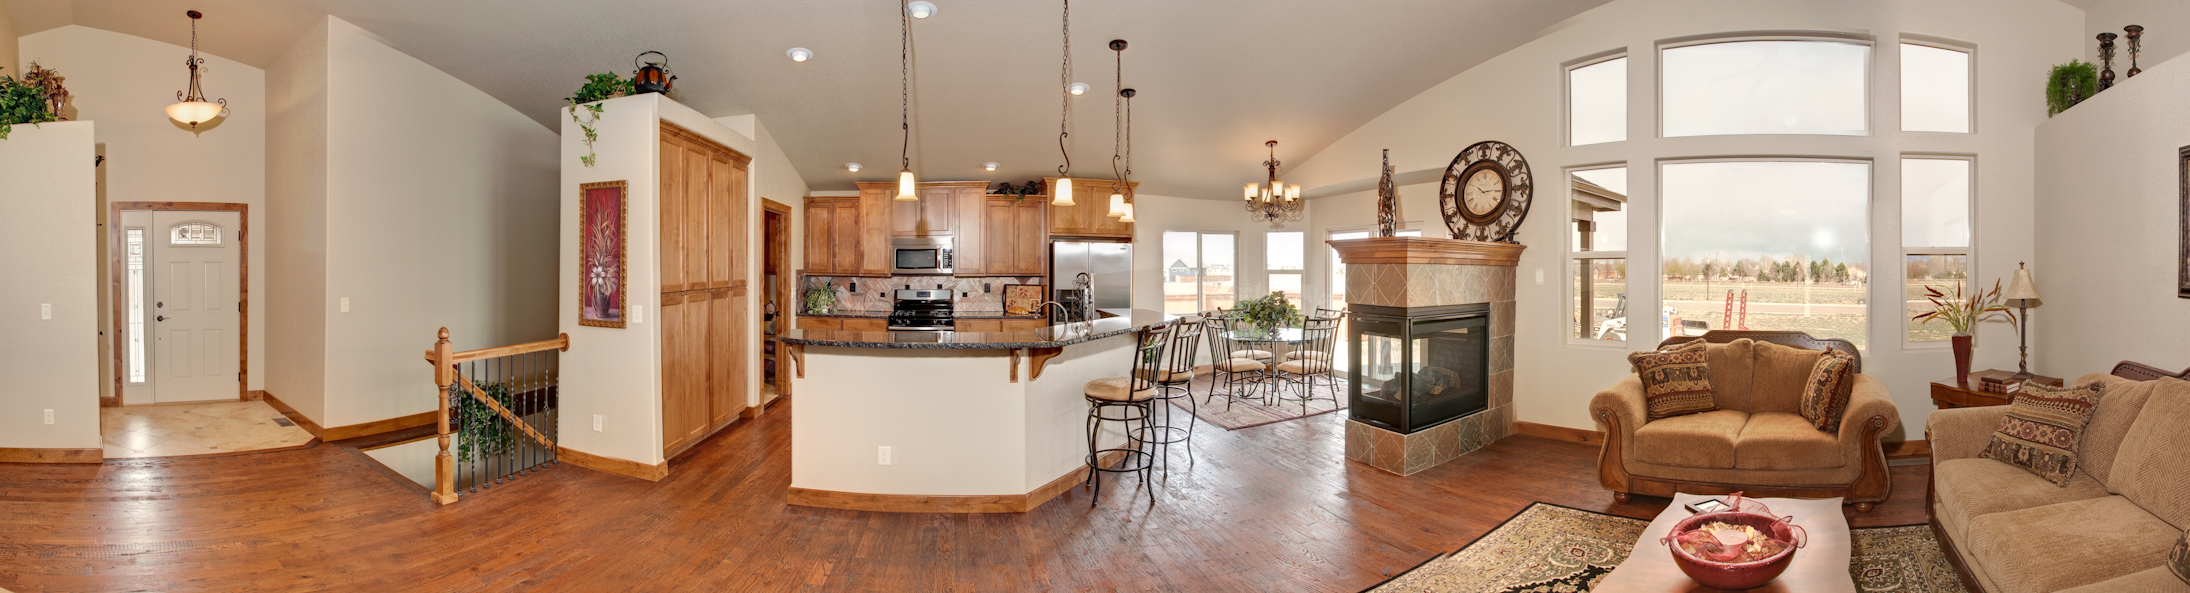 The R&R Homes Difference in New Home Construction